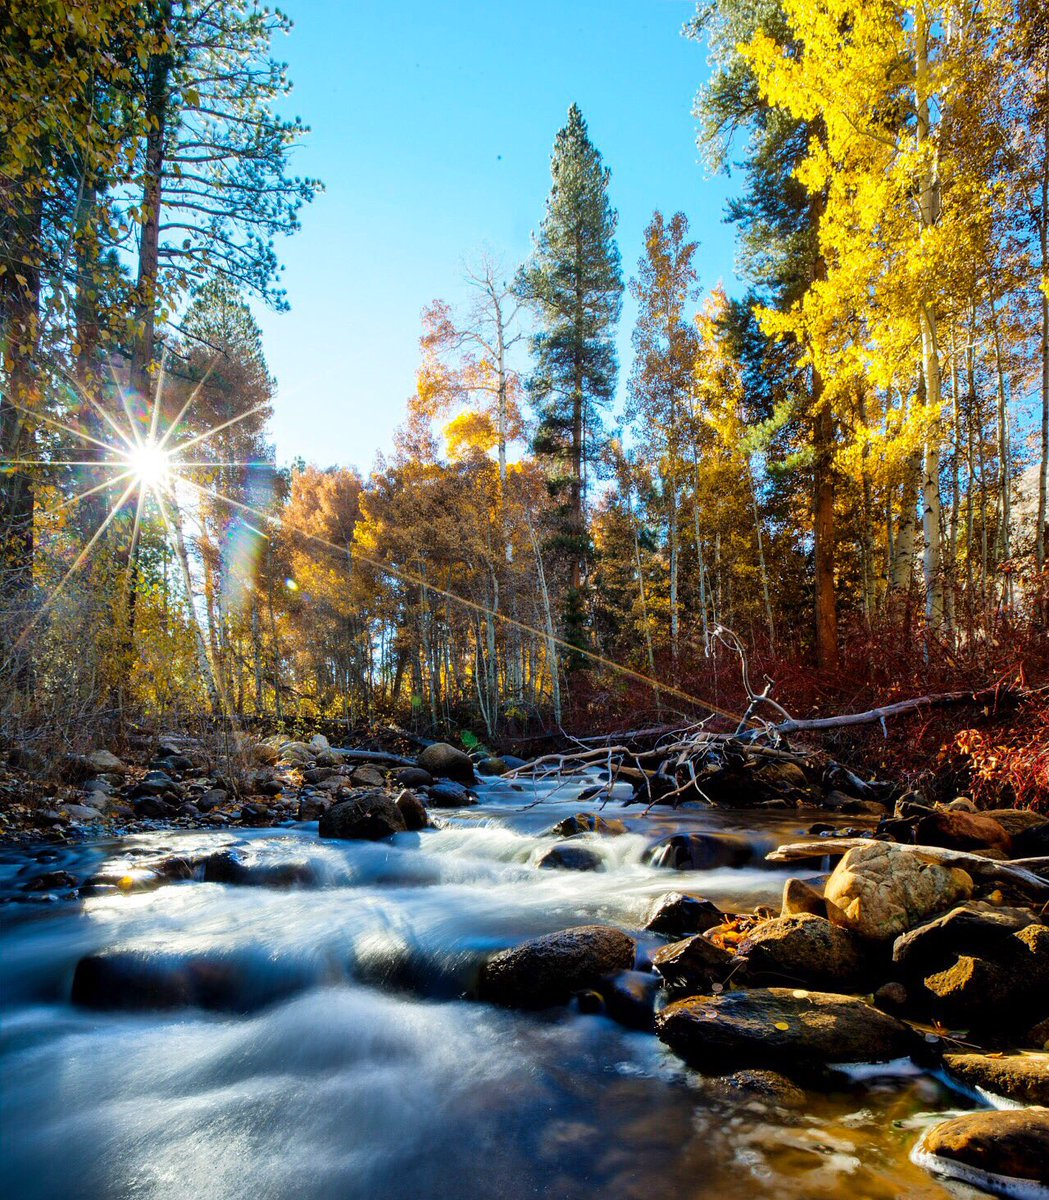 Yellow leaves & rushing water make #fall come alive at Green Creek in #California's famed Eastern Sierra